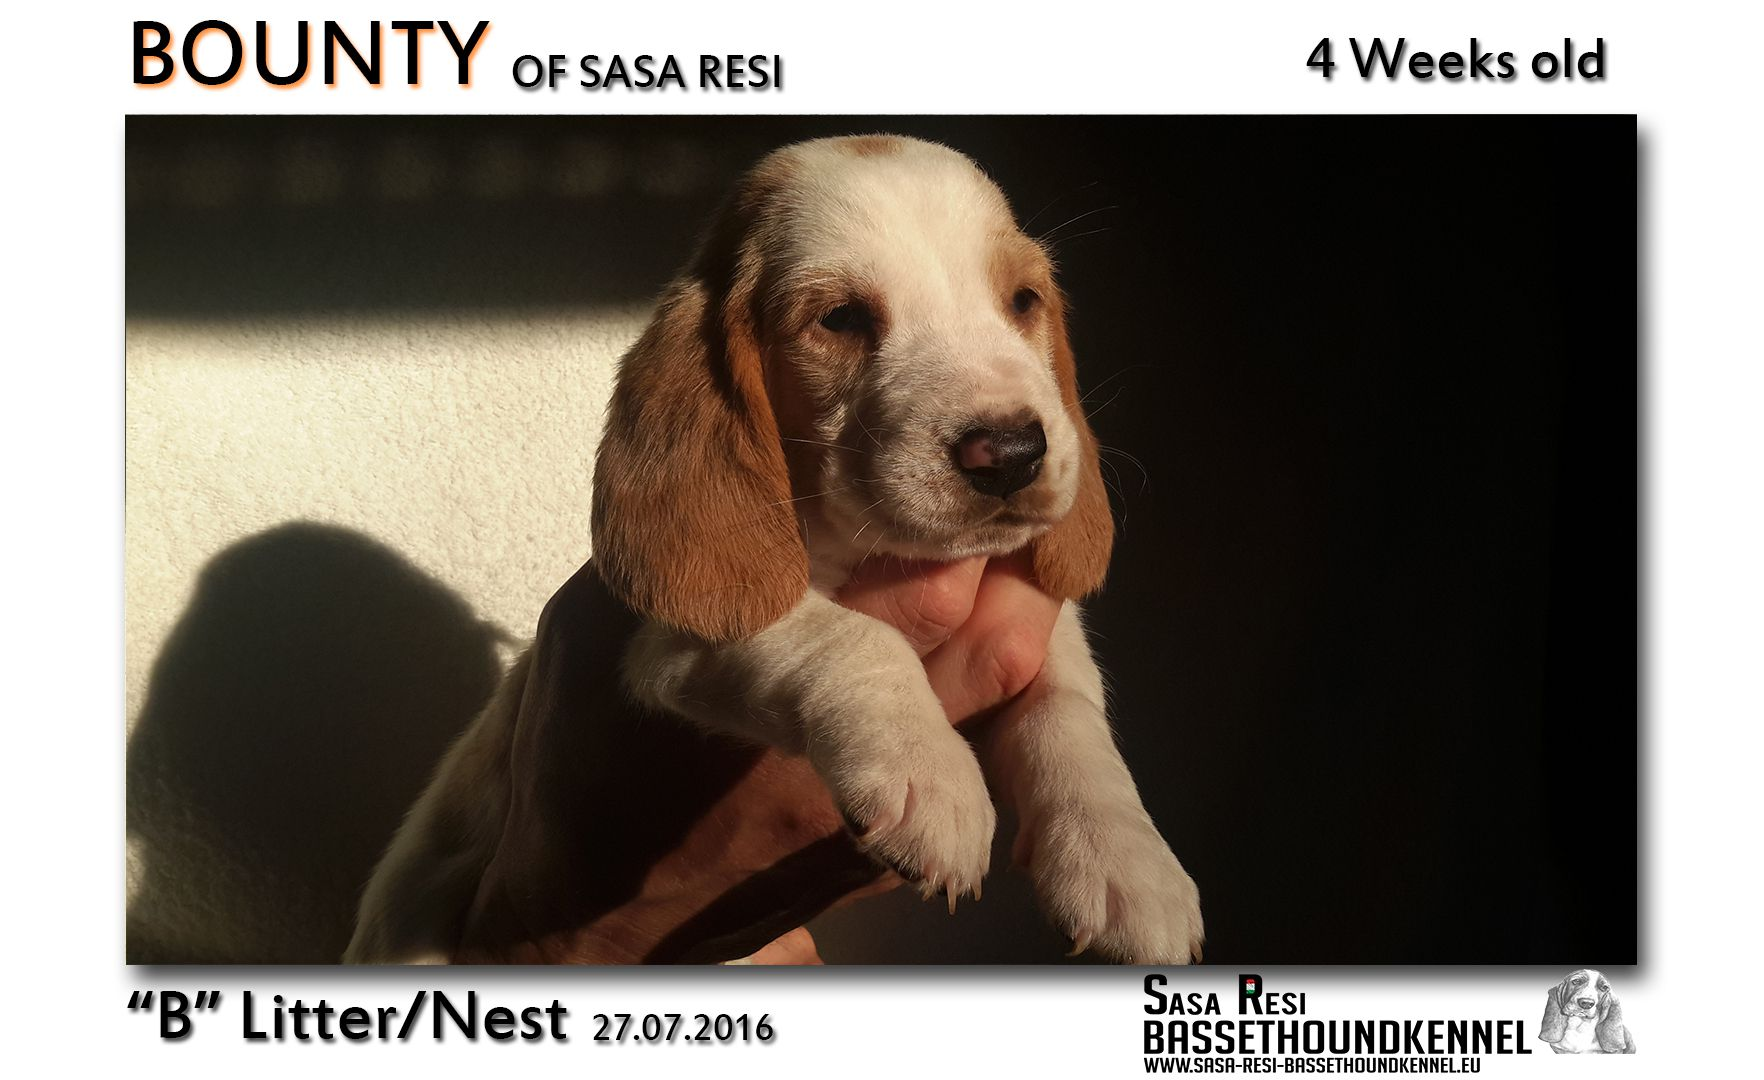 1 compressed 4 SaSa ReSi Bassethoundkennel